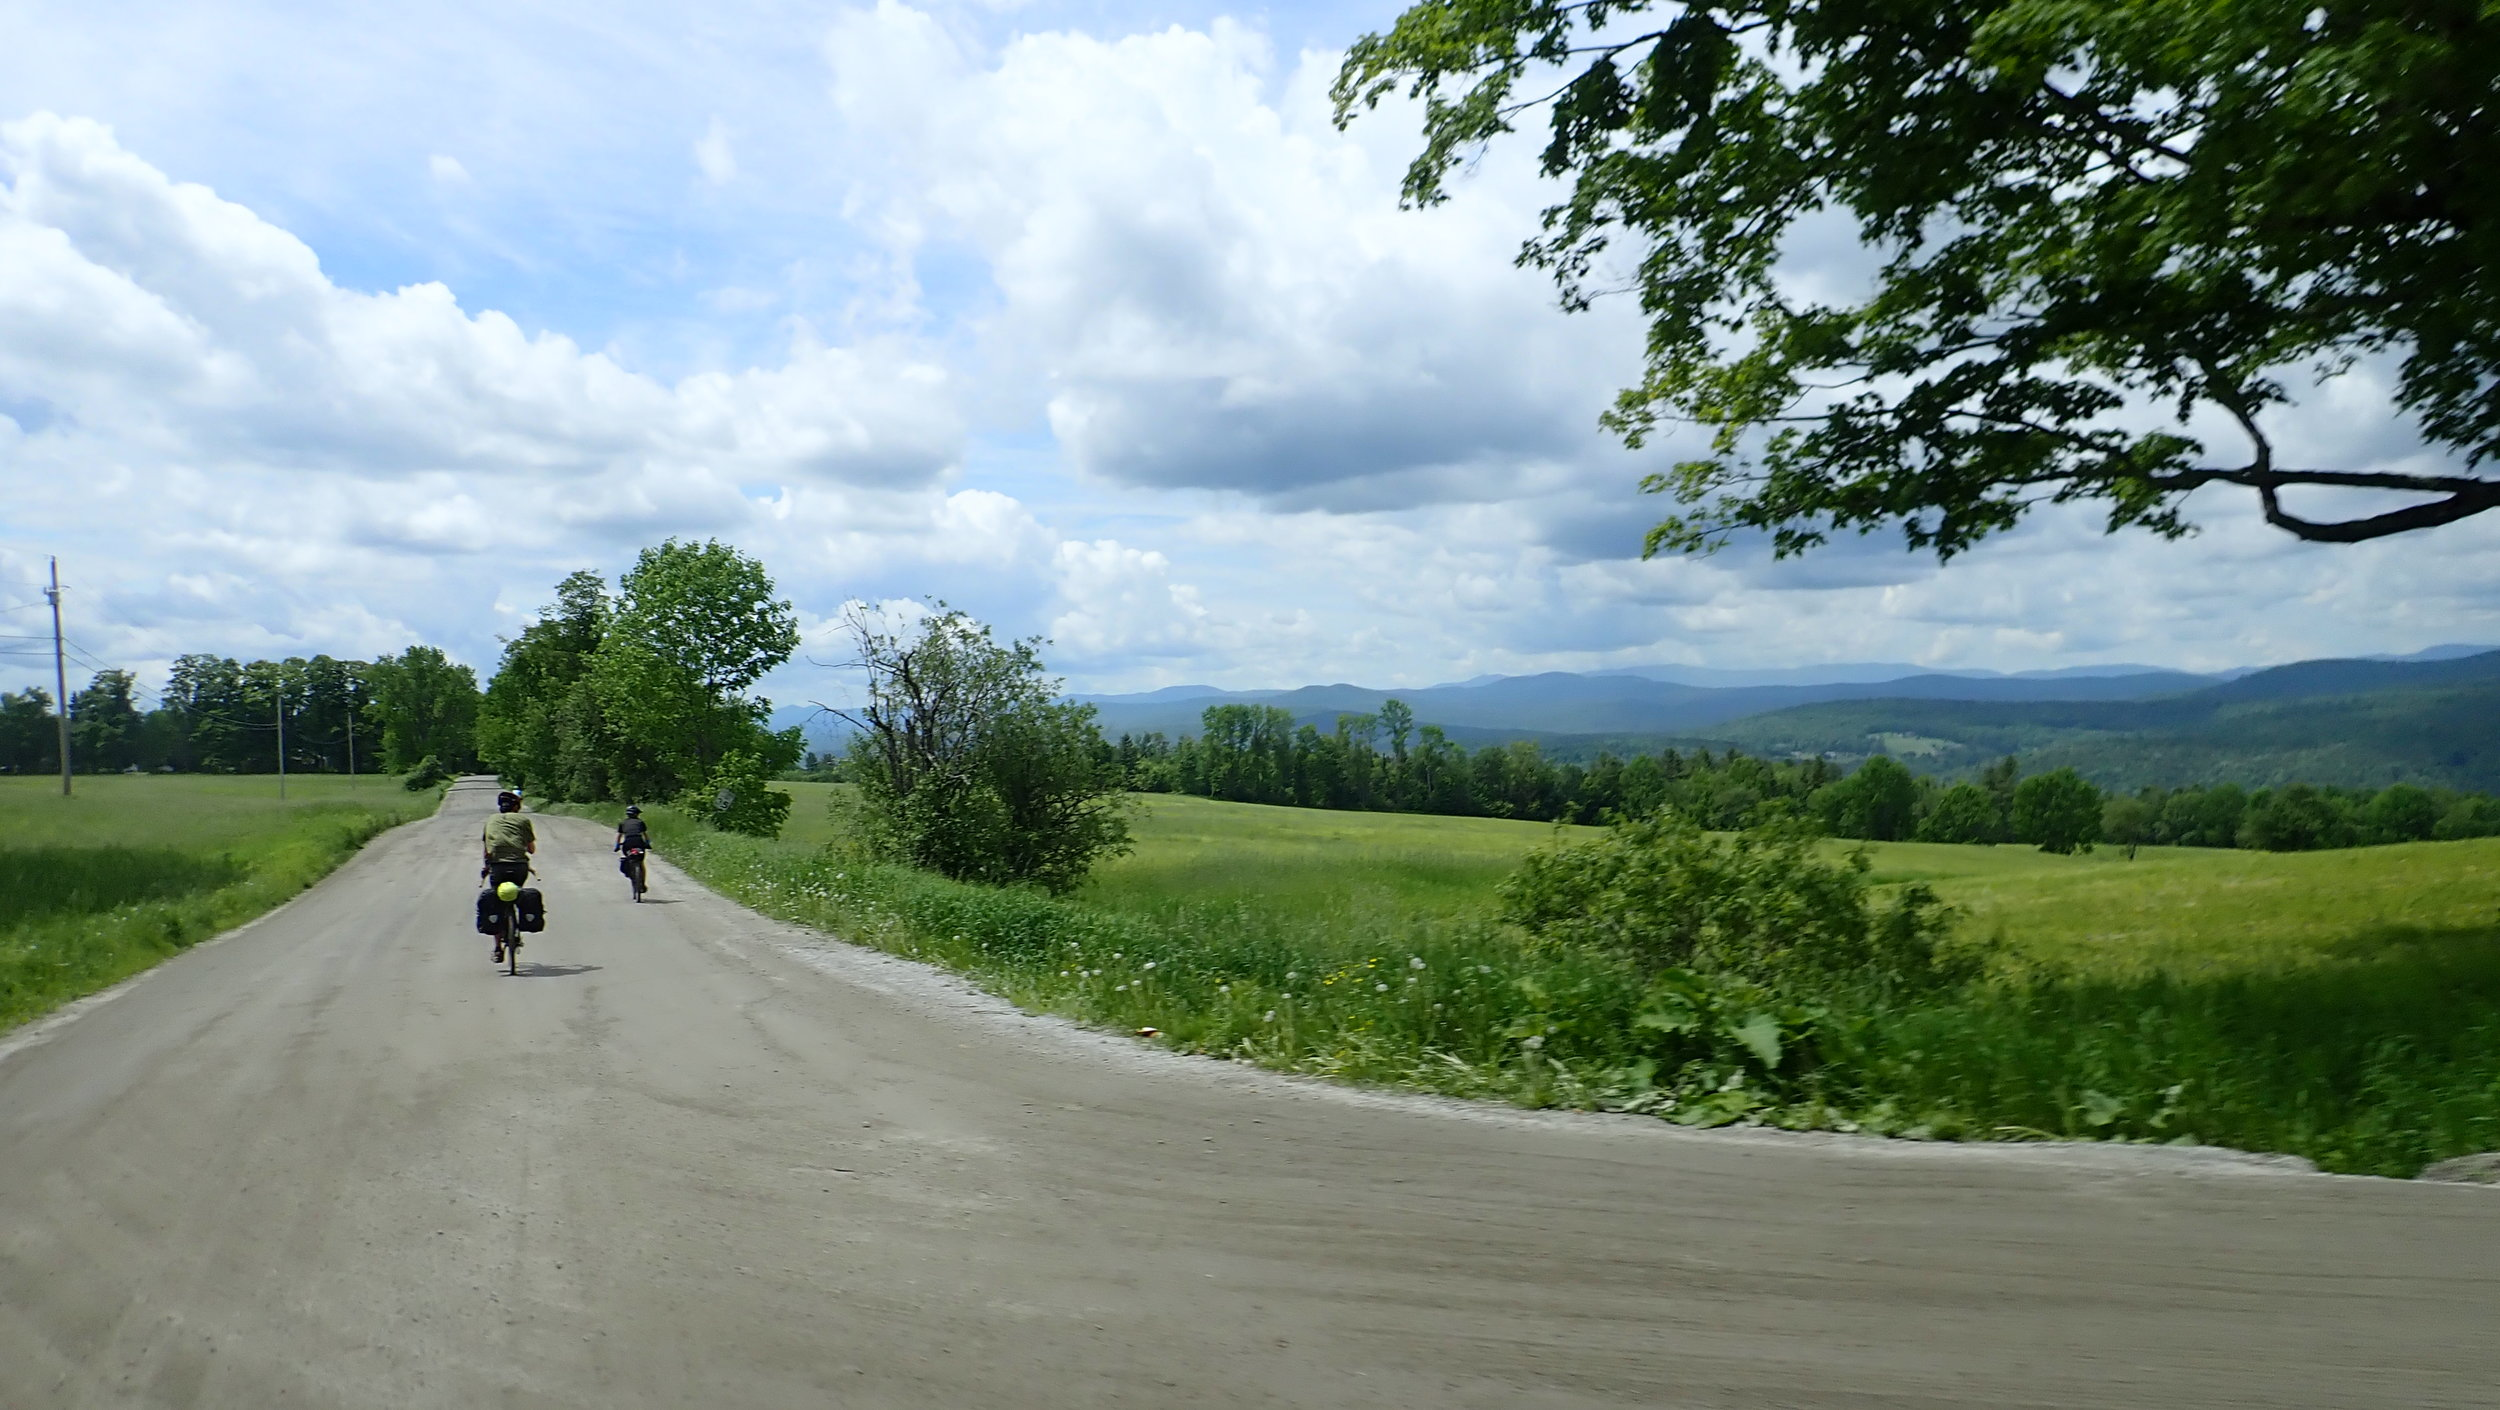 Heading into Montpelier, VT • Photo credit: Ray George